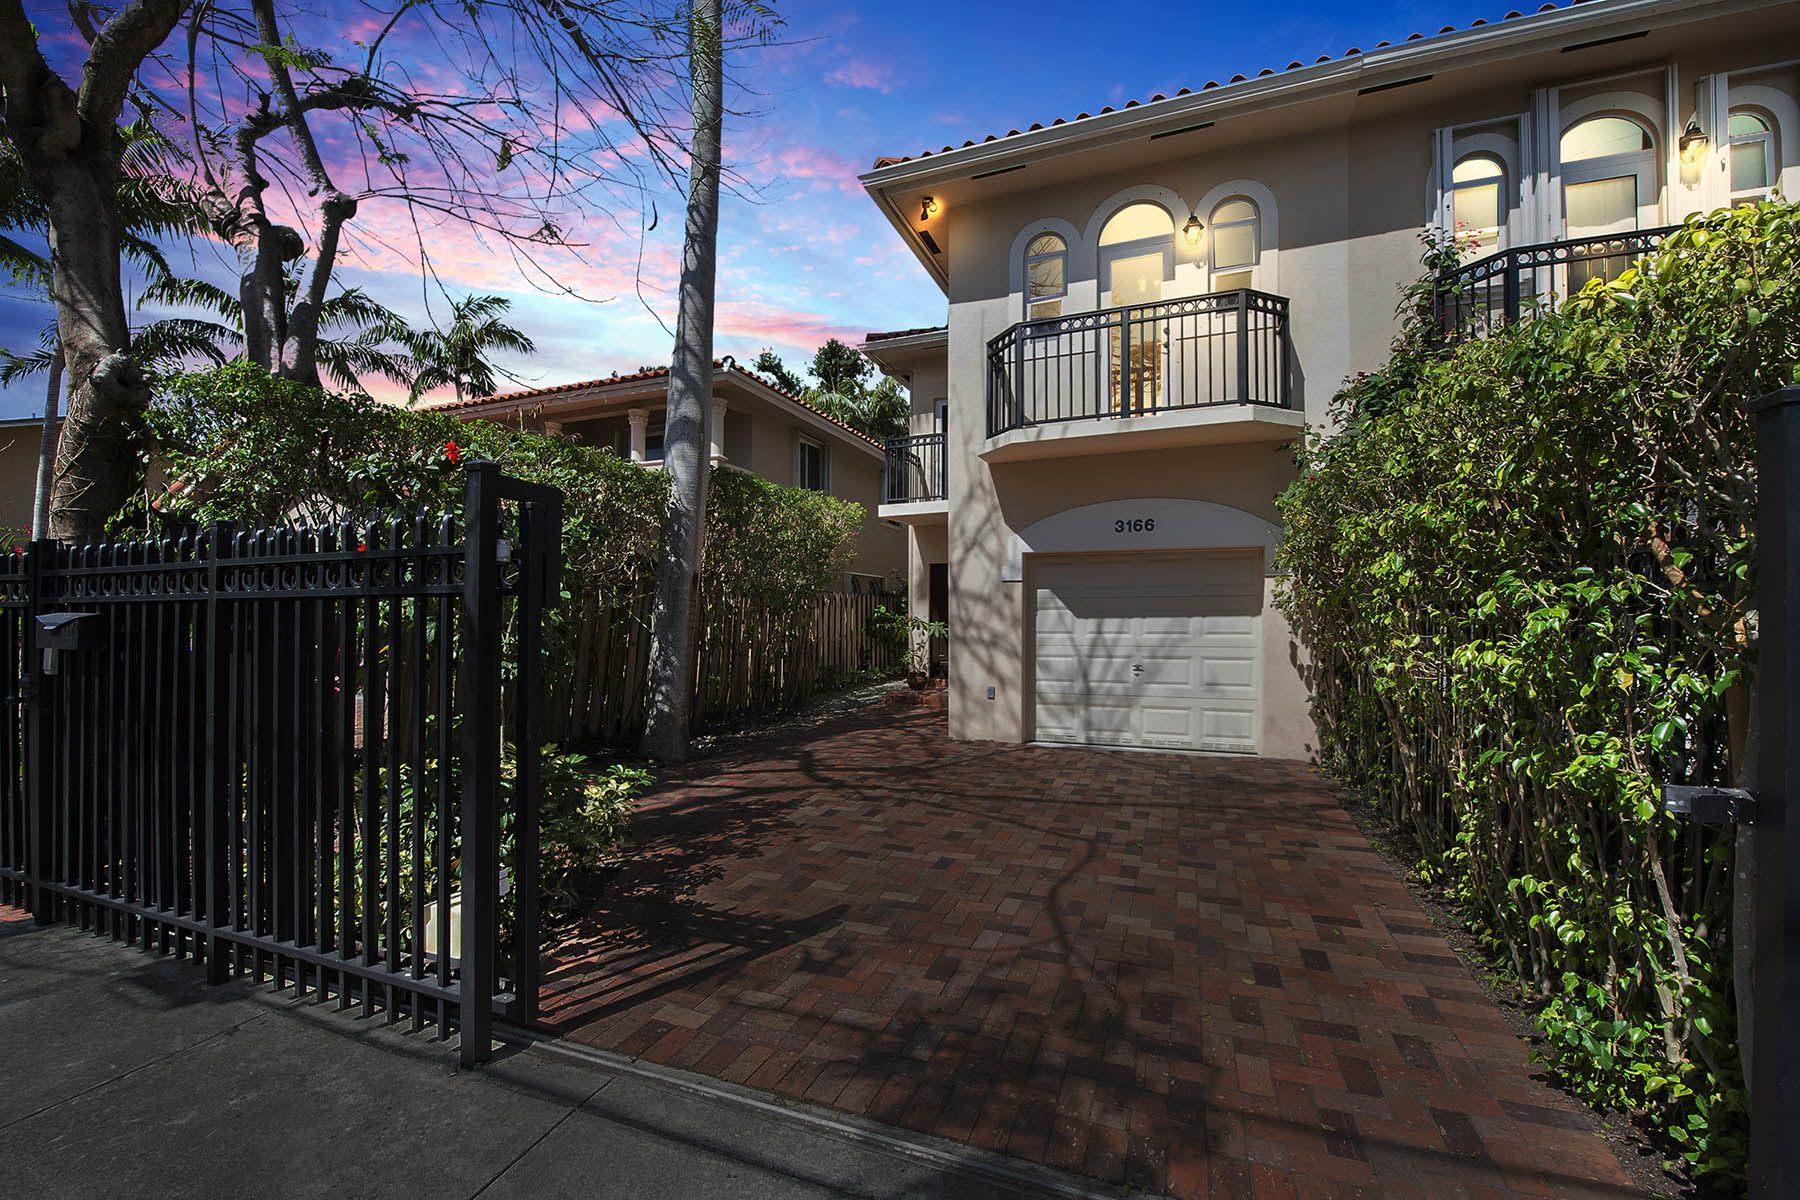 Townhouse for Sale at 3166 Indiana Street Miami, Florida, 33133 United States